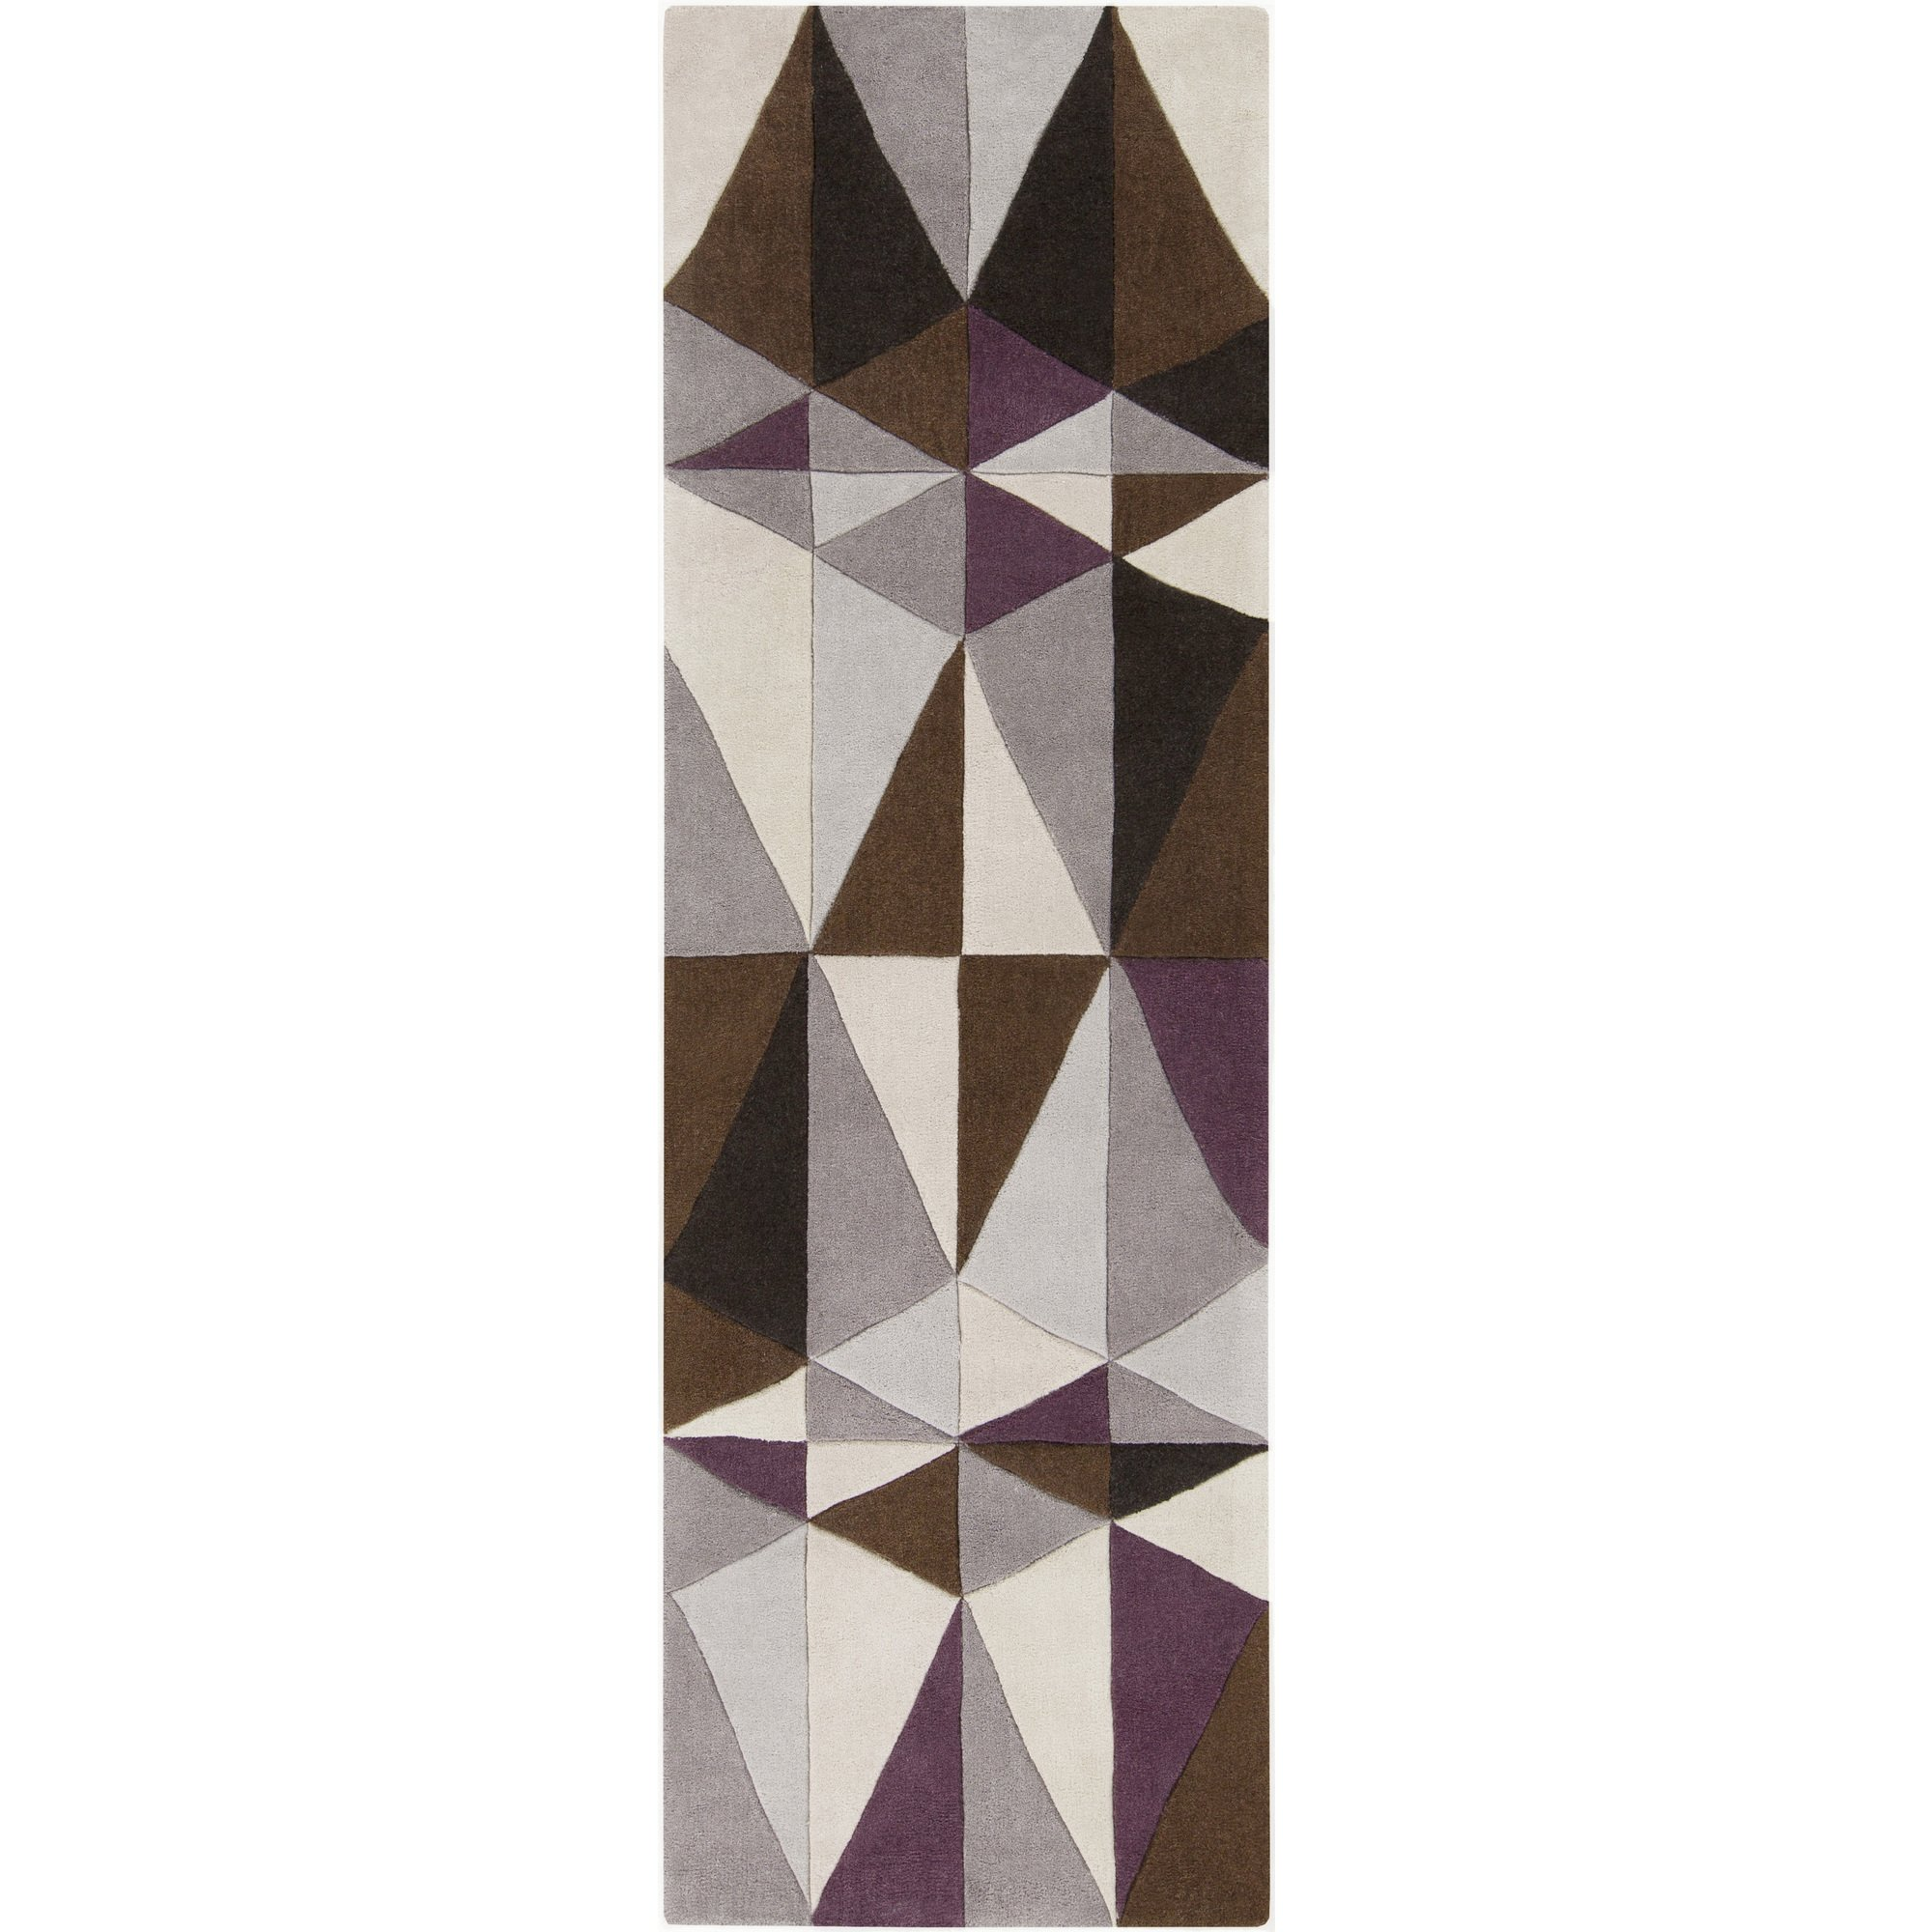 Surya Cosmopolitan COS-9171 Transitional Hand Tufted 100% Polyester Antique White 2'6'' x 8' Geometric Runner